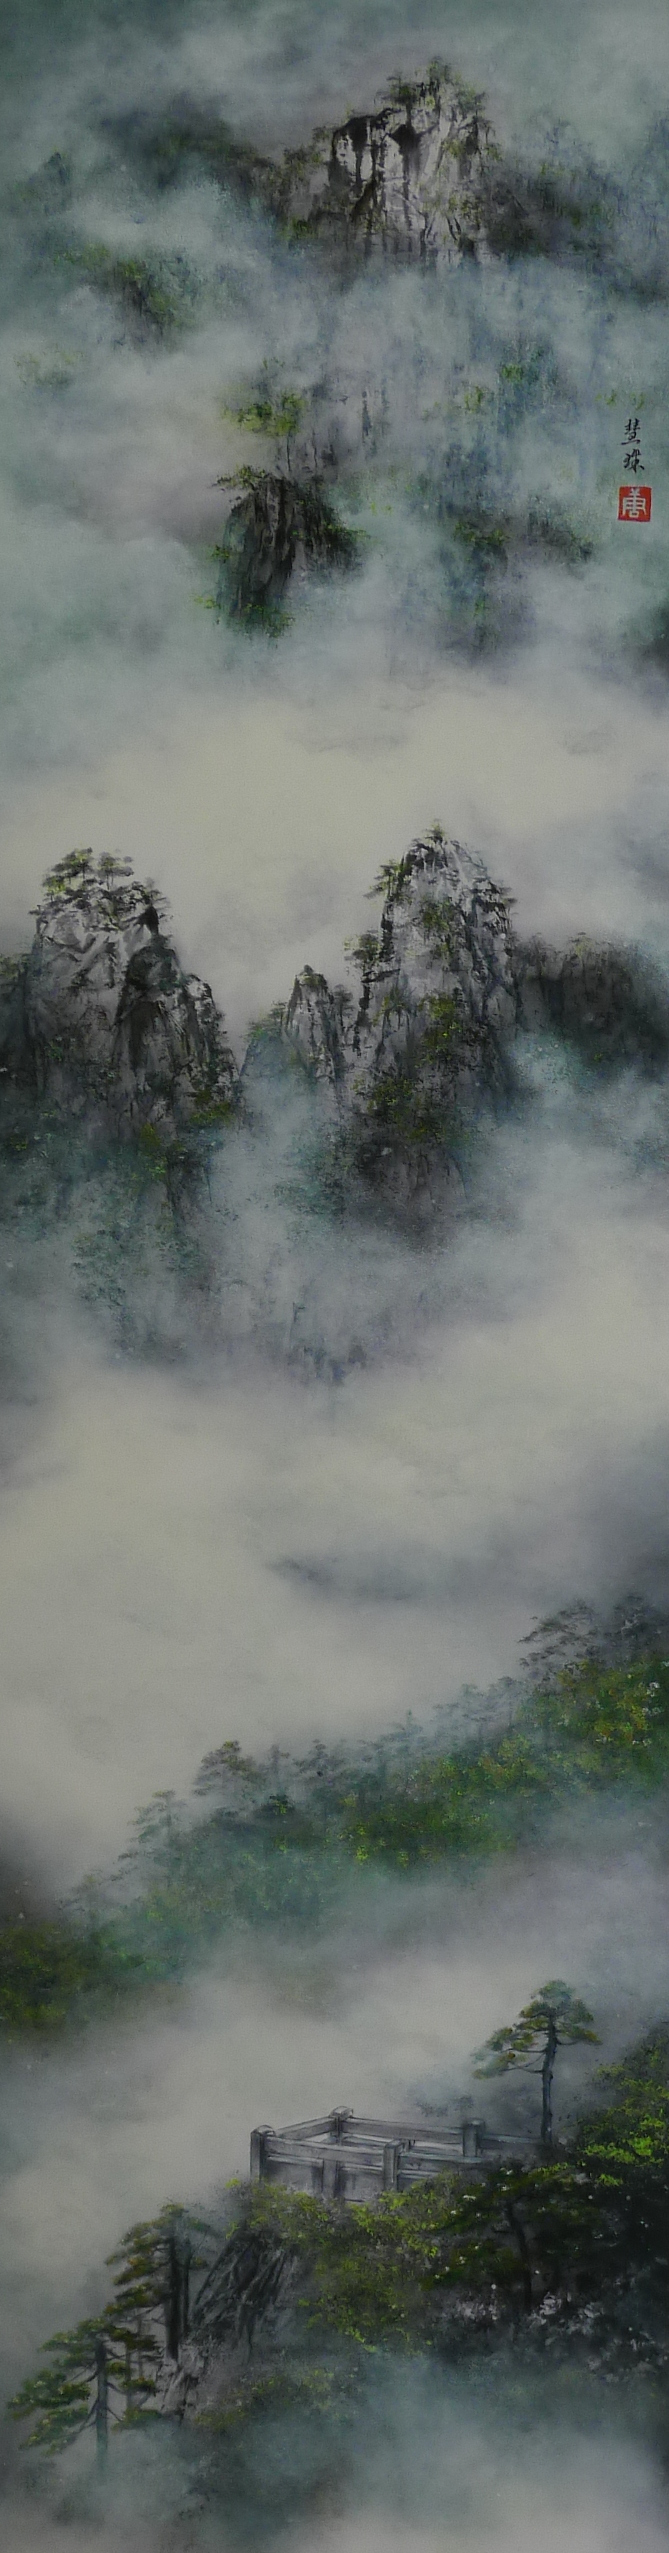 Mount Huang - The Lookout 清涼台 153 x 41cm